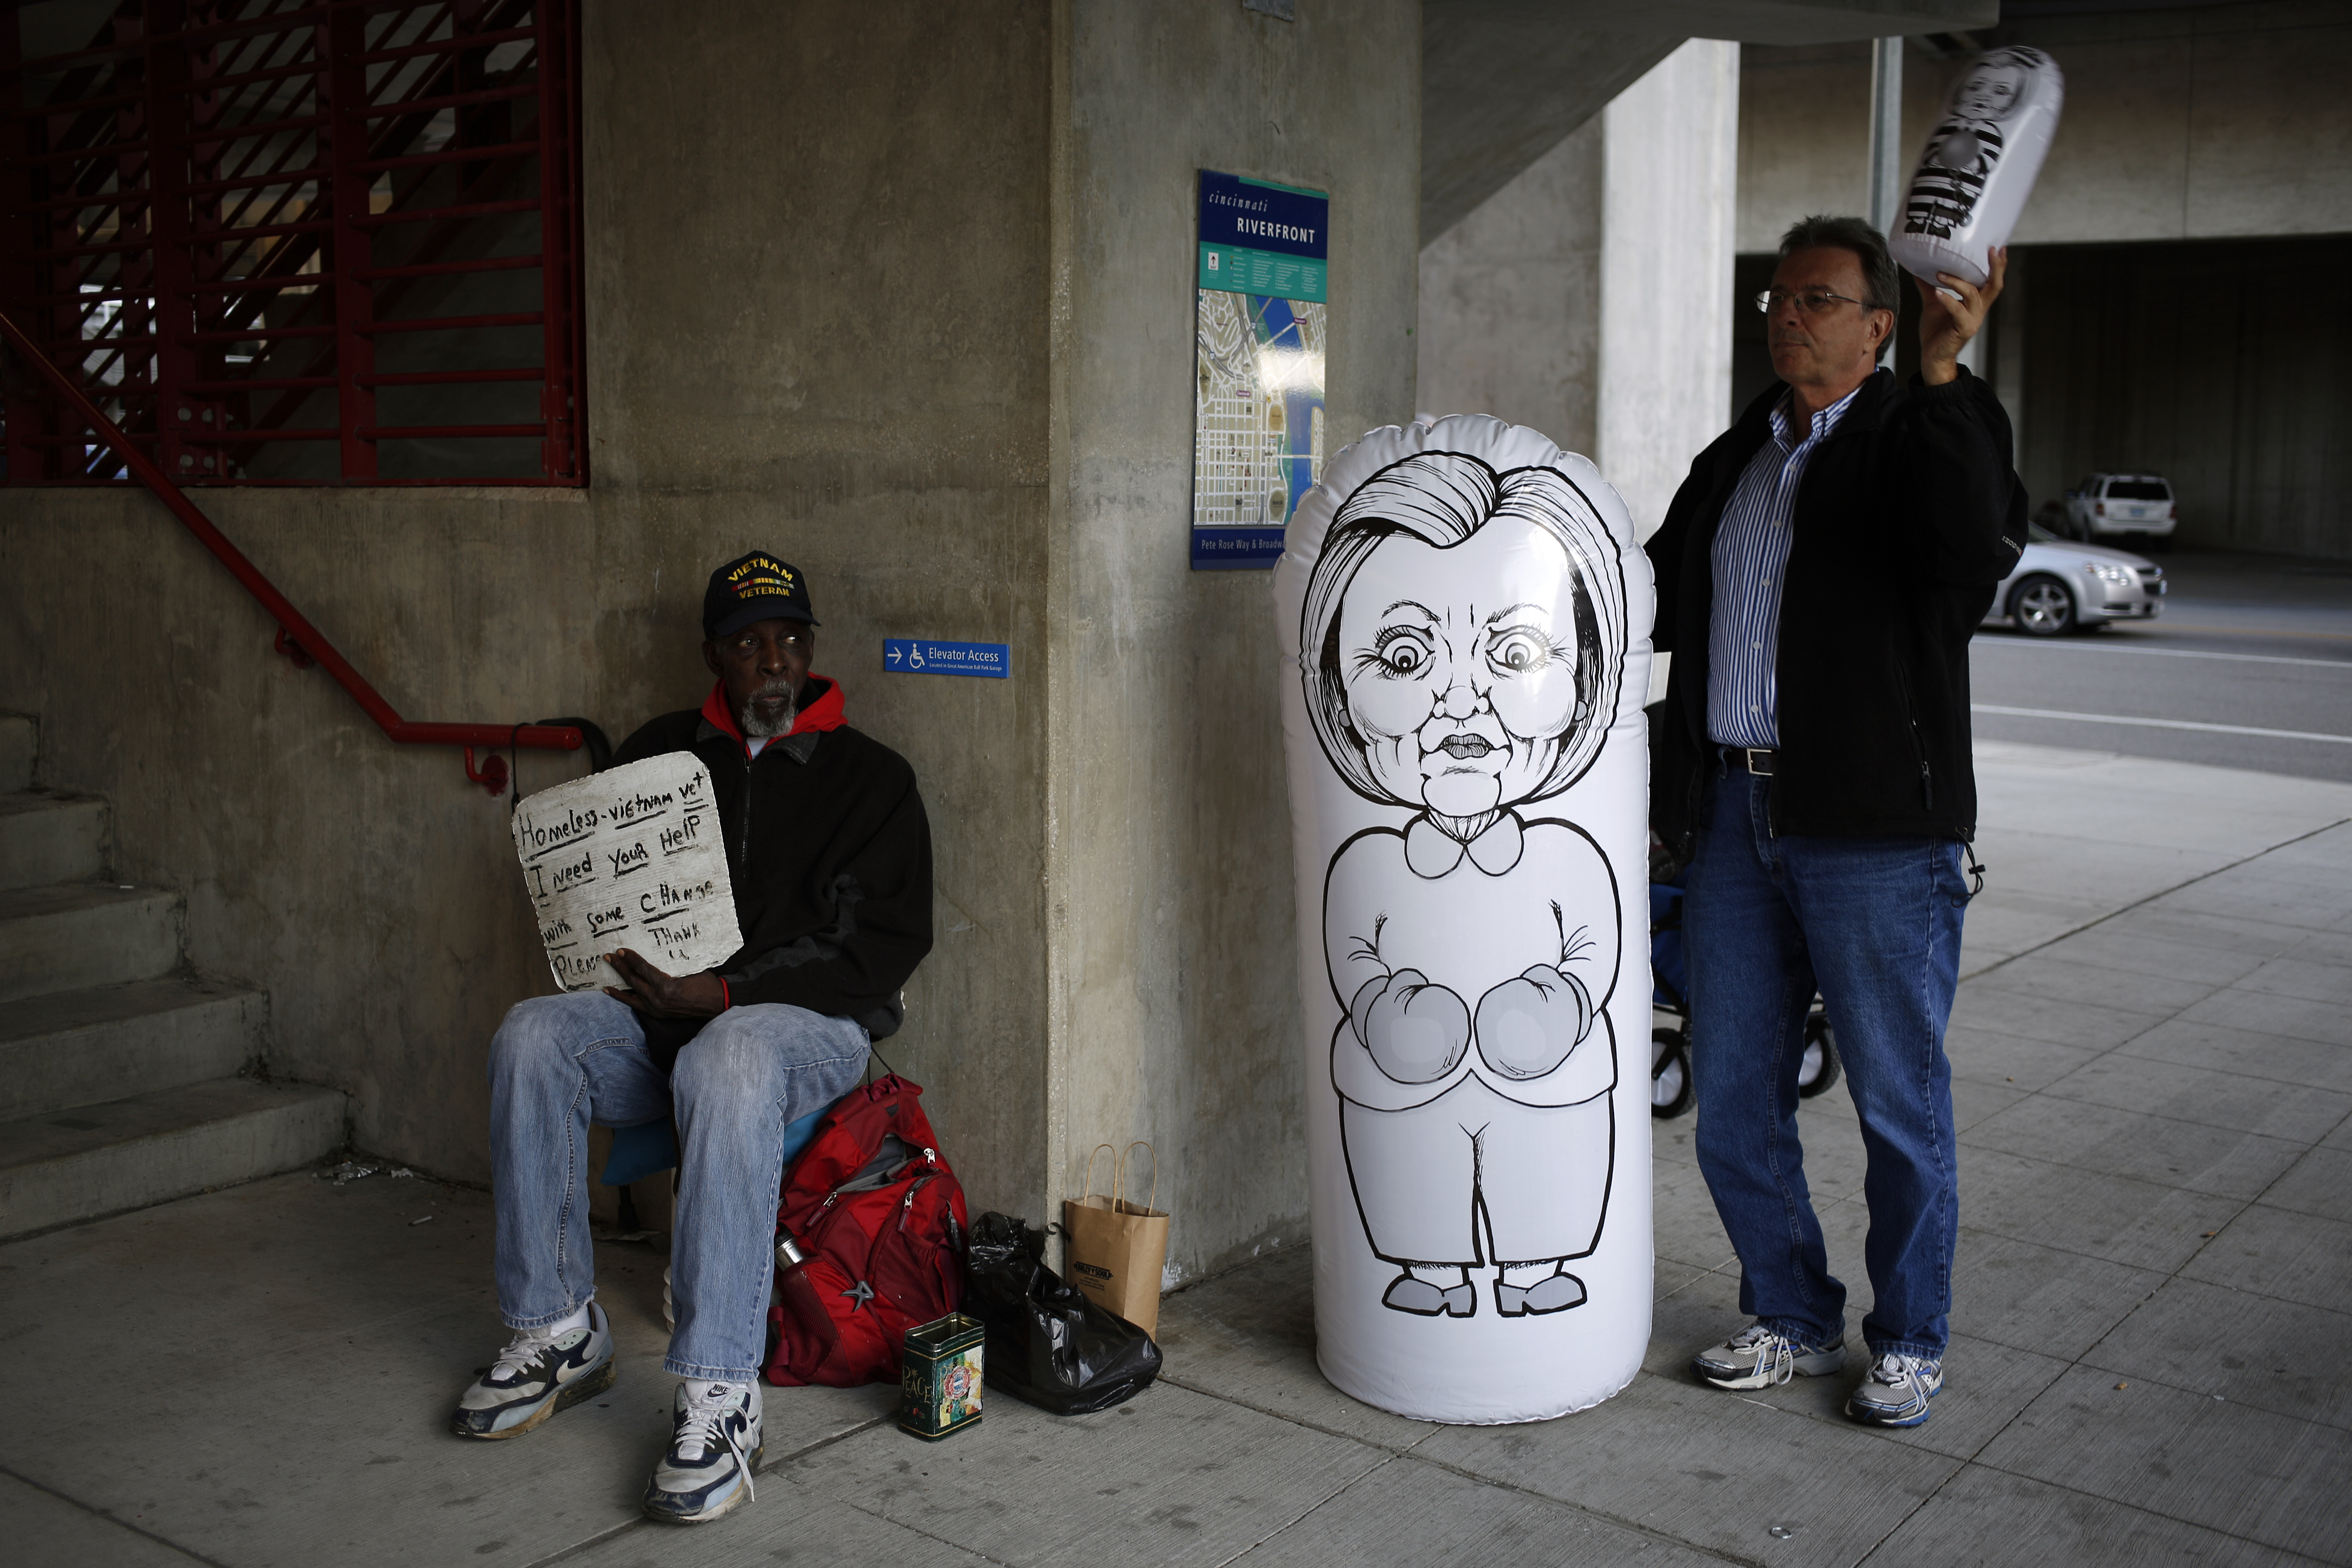 A vendor sells an inflatable punching bag bearing a caricature of Hillary Clinton next to a man begging for money outside a campaign event for Donald Trump in Cincinnati, Ohio, on Oct. 13, 2016.